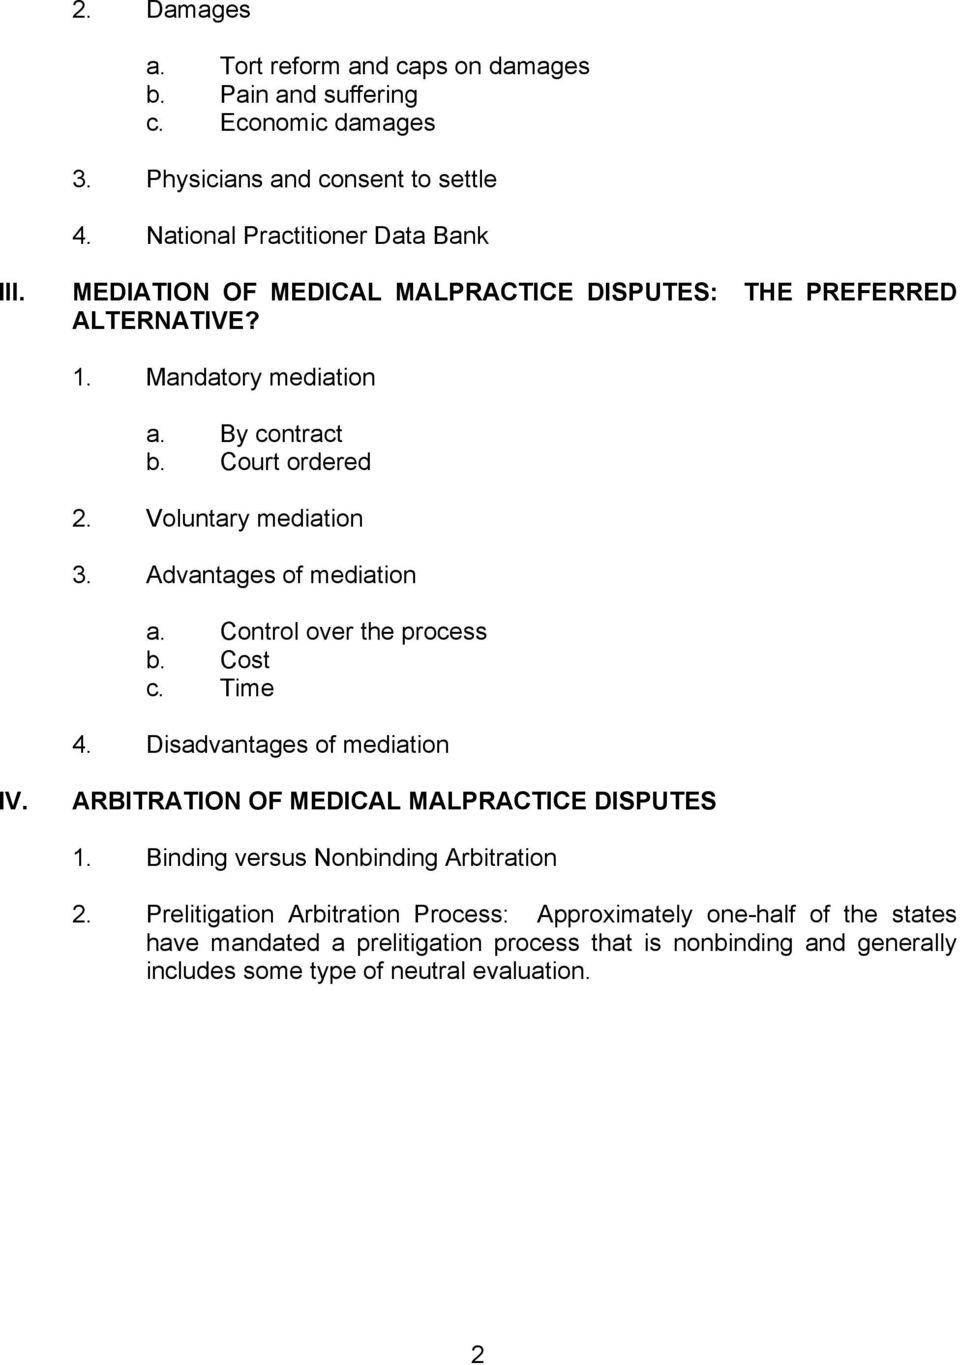 Advantages of mediation a. Control over the process b. Cost c. Time 4. Disadvantages of mediation IV. ARBITRATION OF MEDICAL MALPRACTICE DISPUTES 1.